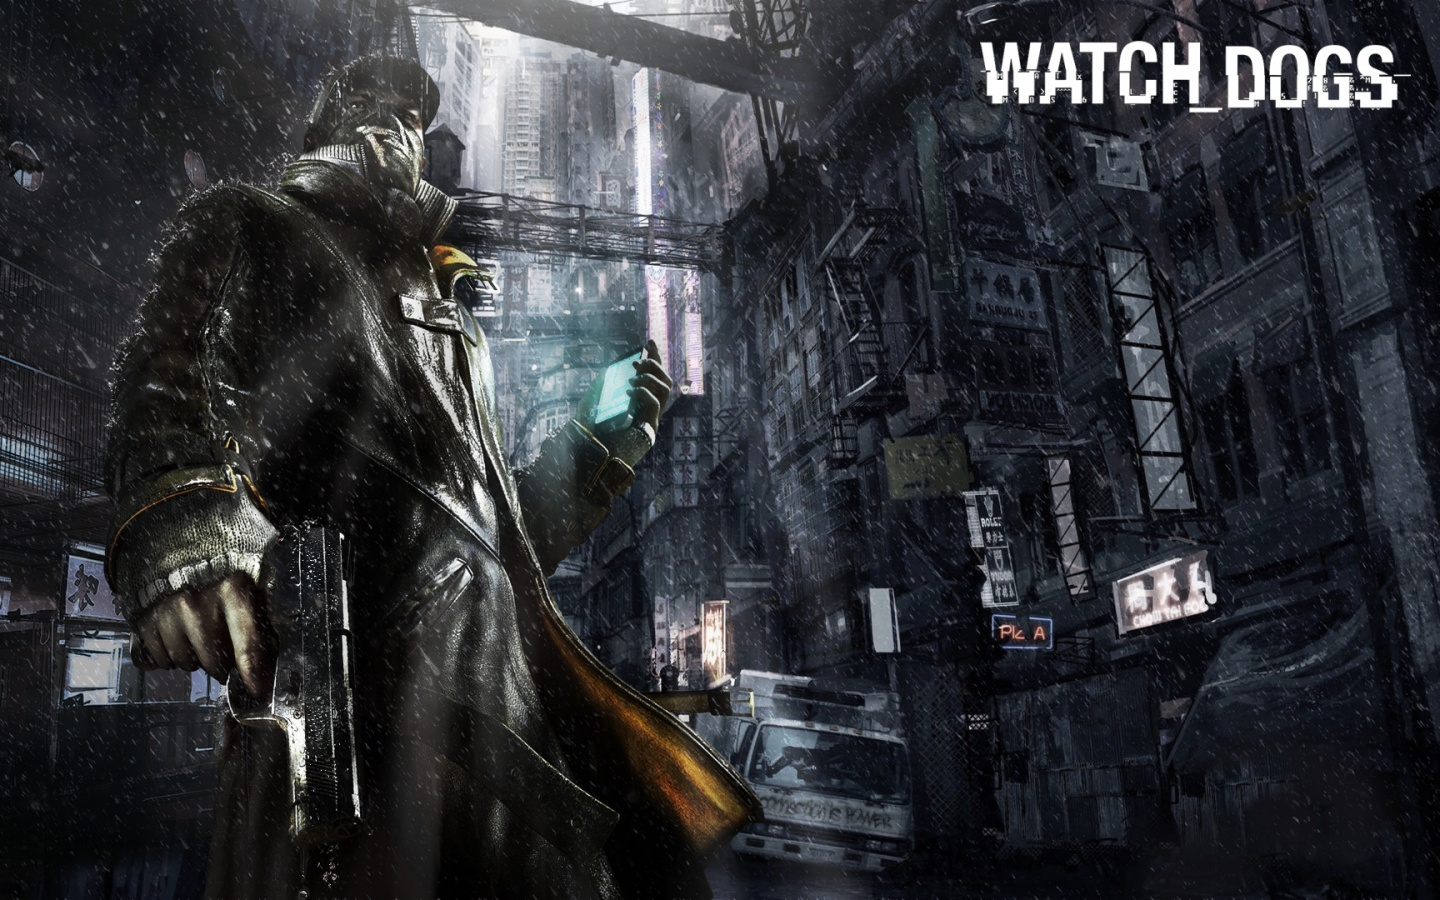 Watch dogs art